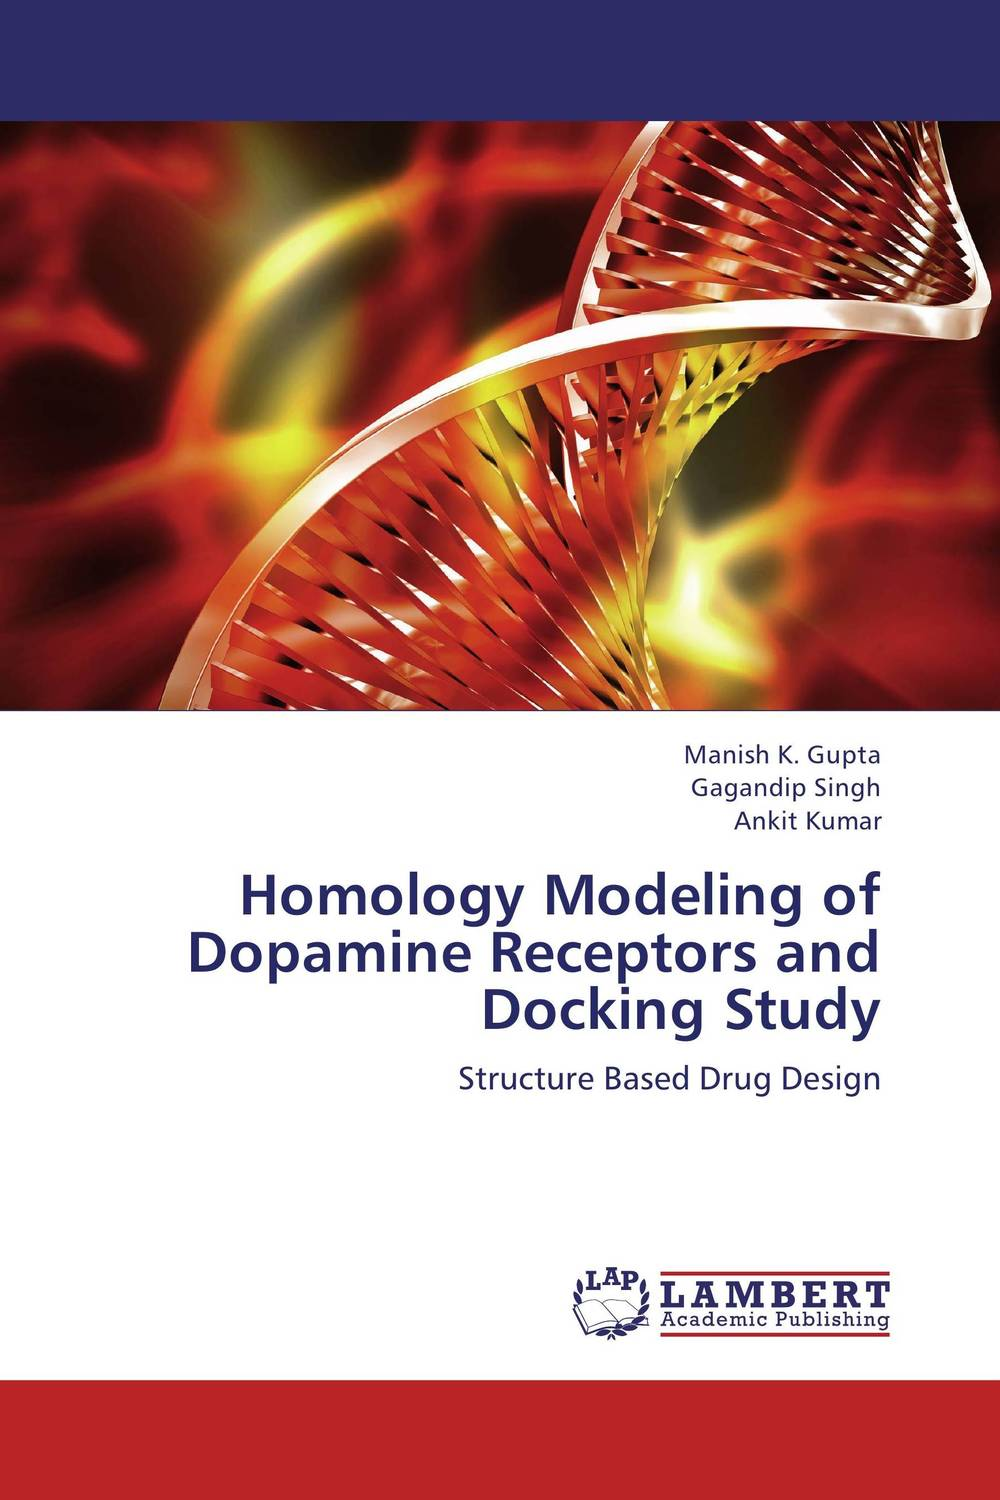 Homology Modeling of Dopamine Receptors and Docking Study dipti joshi dr kala suhas kulkarni and dr kishori apte anticancer activity of casearia esculenta in experimental models